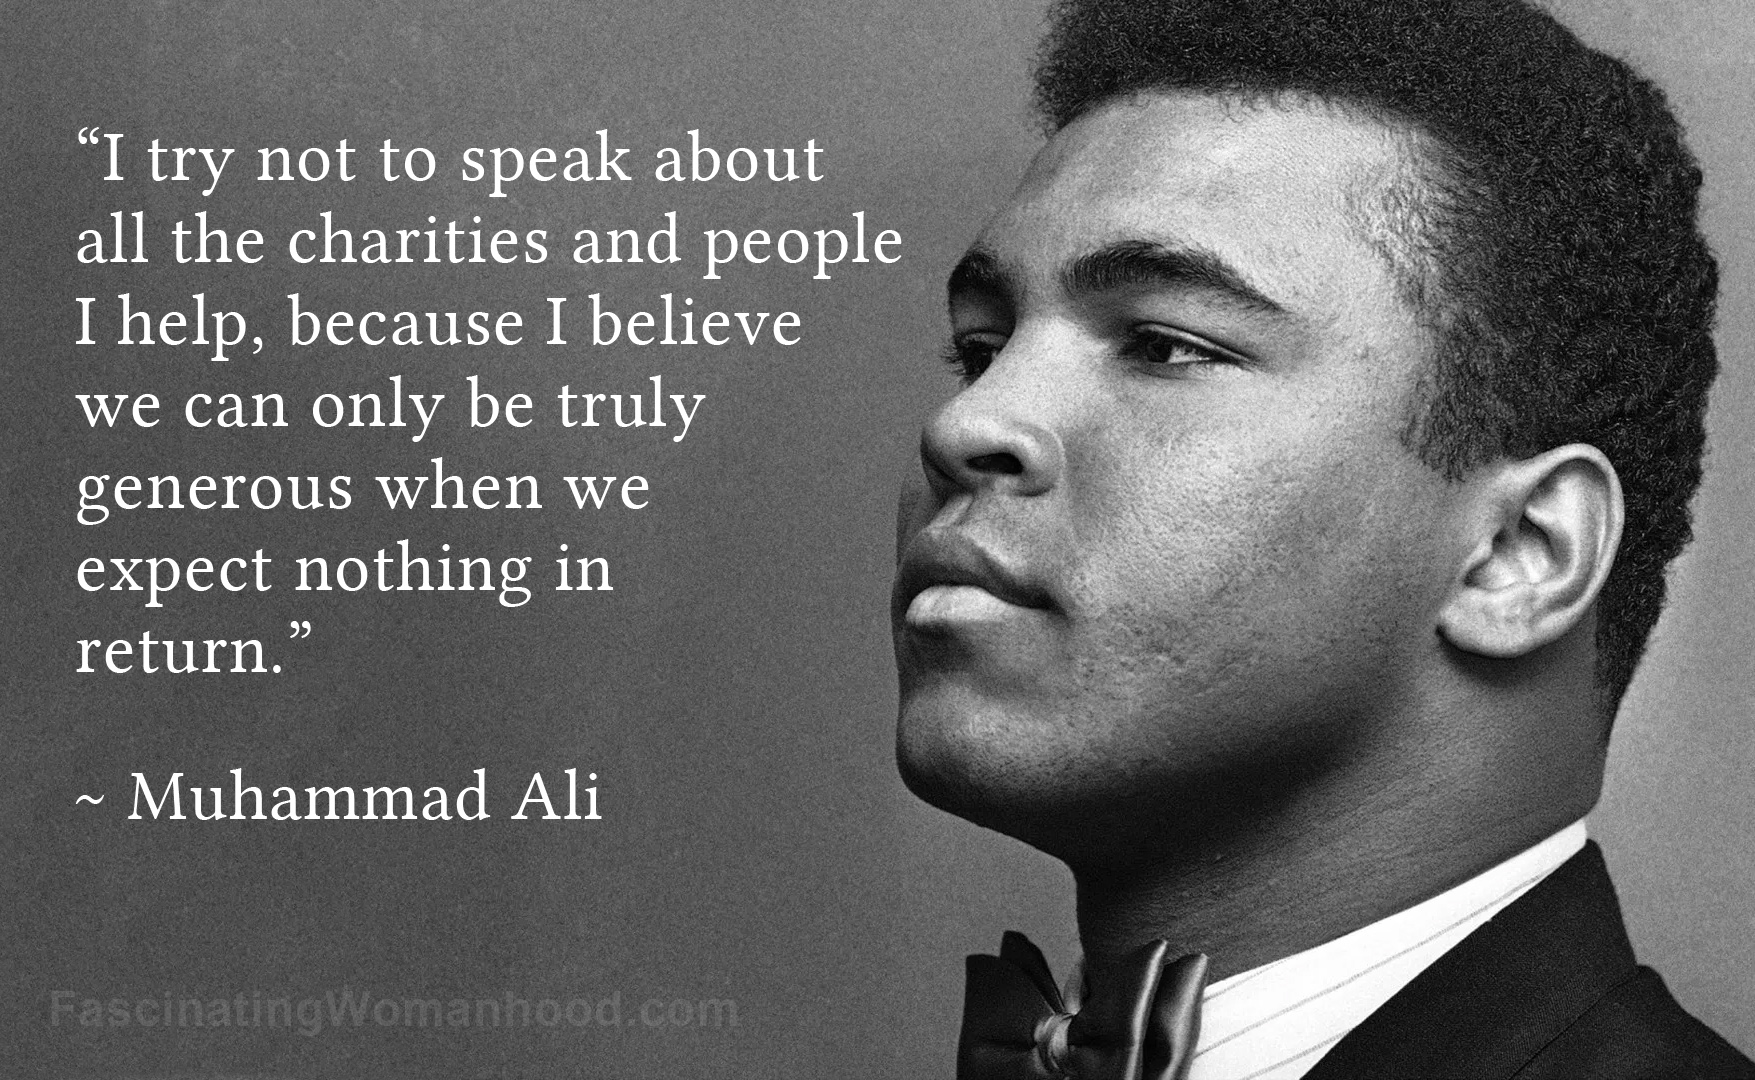 A Quote by Muhammad Ali.jpg